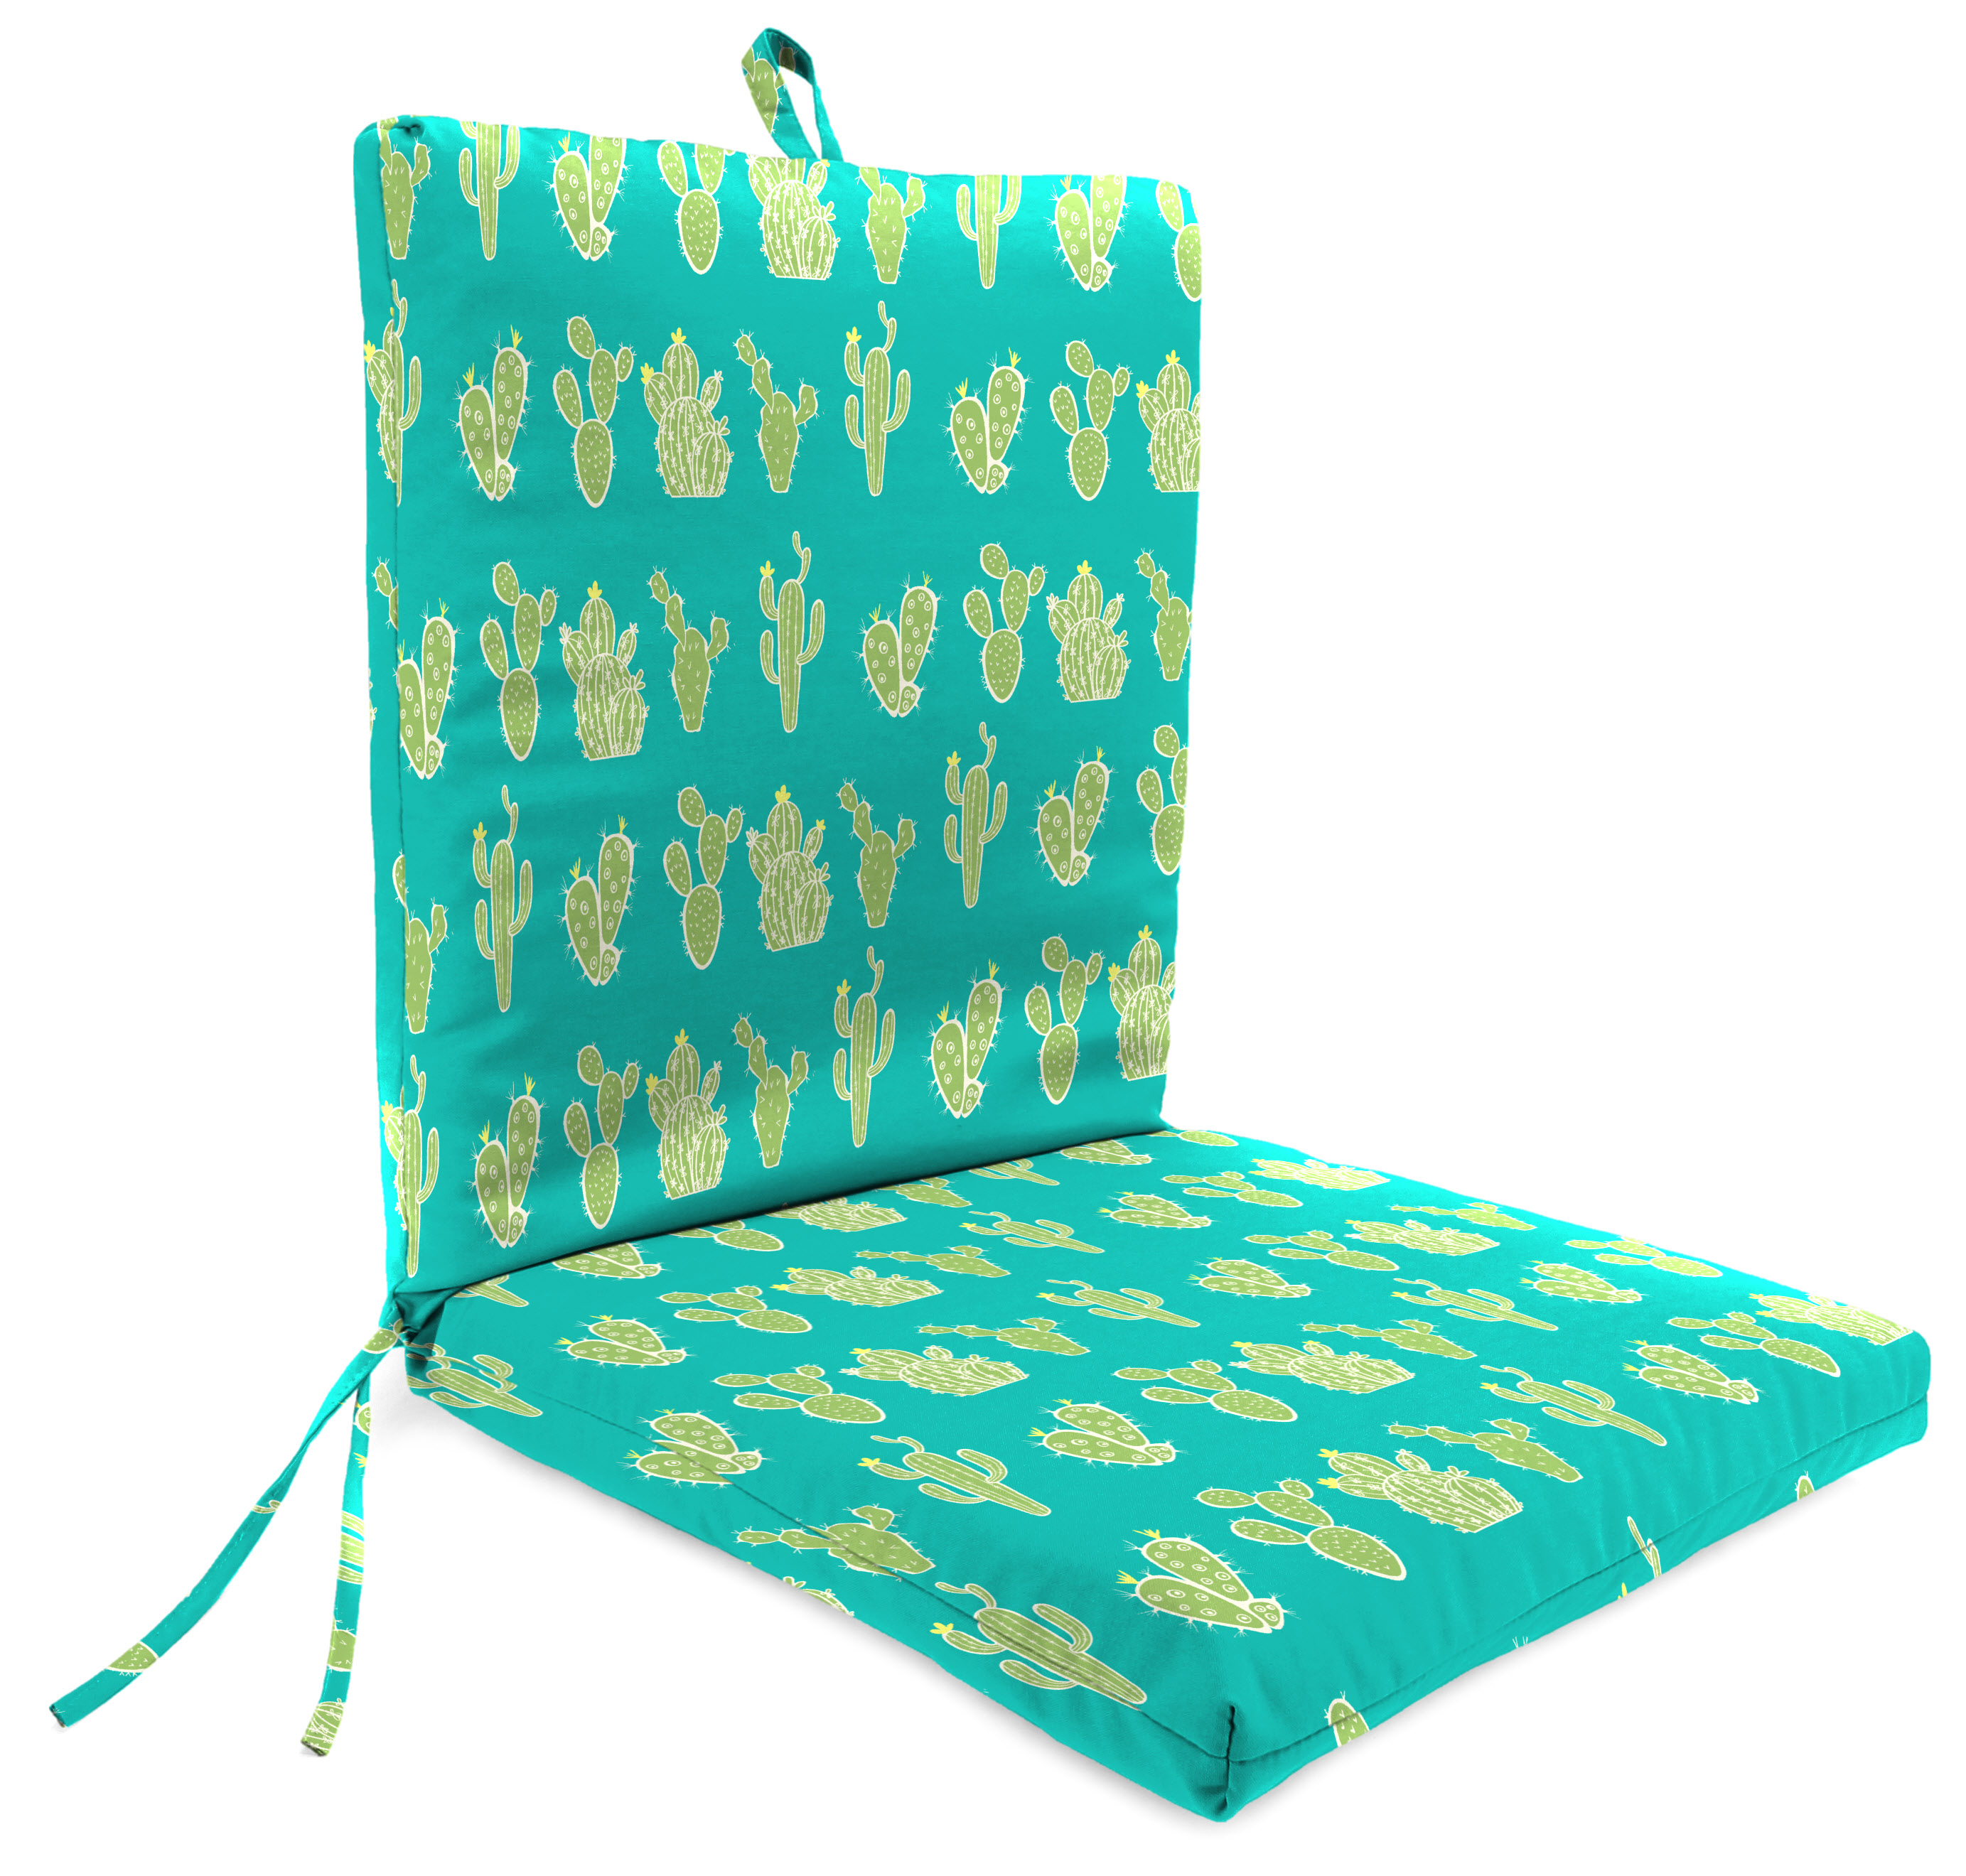 mainstays cactus 1 piece outdoor dining chair cushion